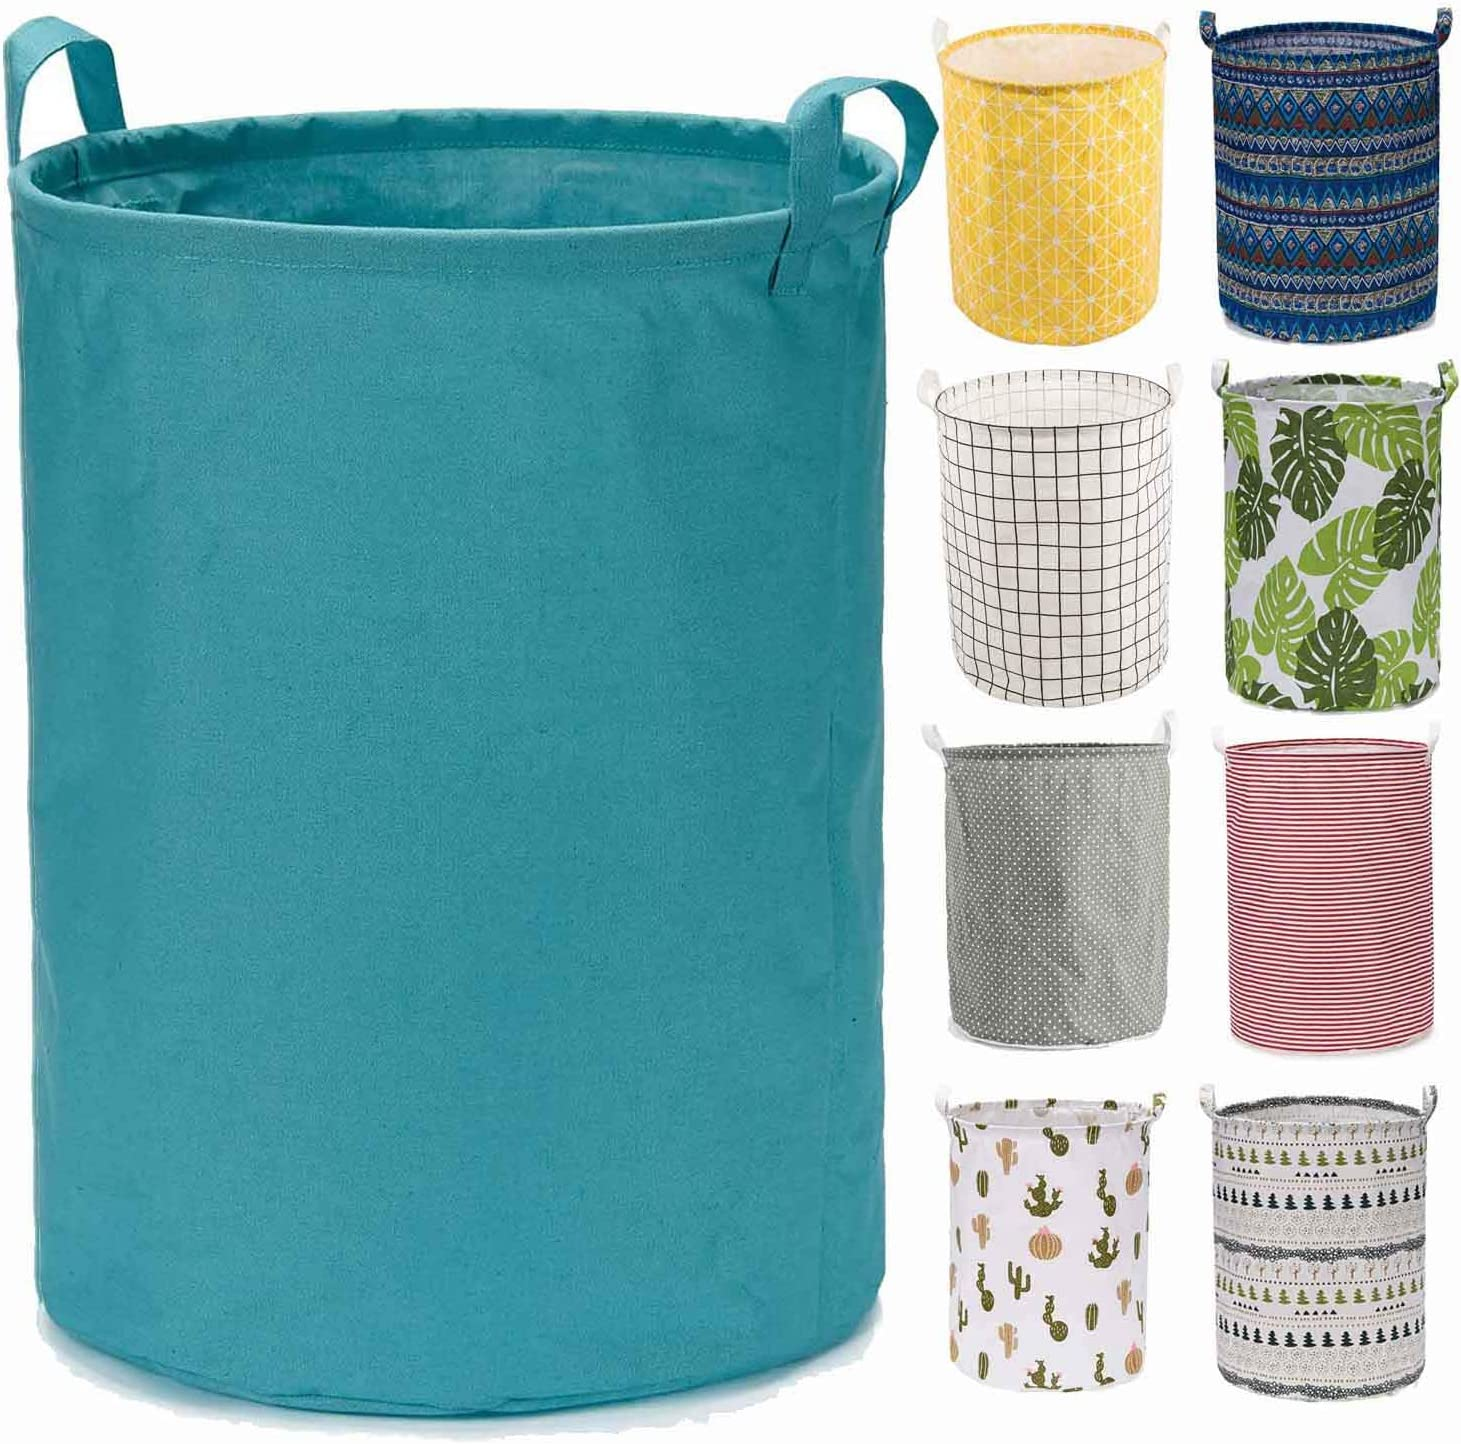 "Every Deco Cylinder Round Single Fabric Plastic Frame Laundry Basket Hamper Storage Bin Organization Collapsible Foldable Toys Clothes - 19.7"" H/Large - Teal"